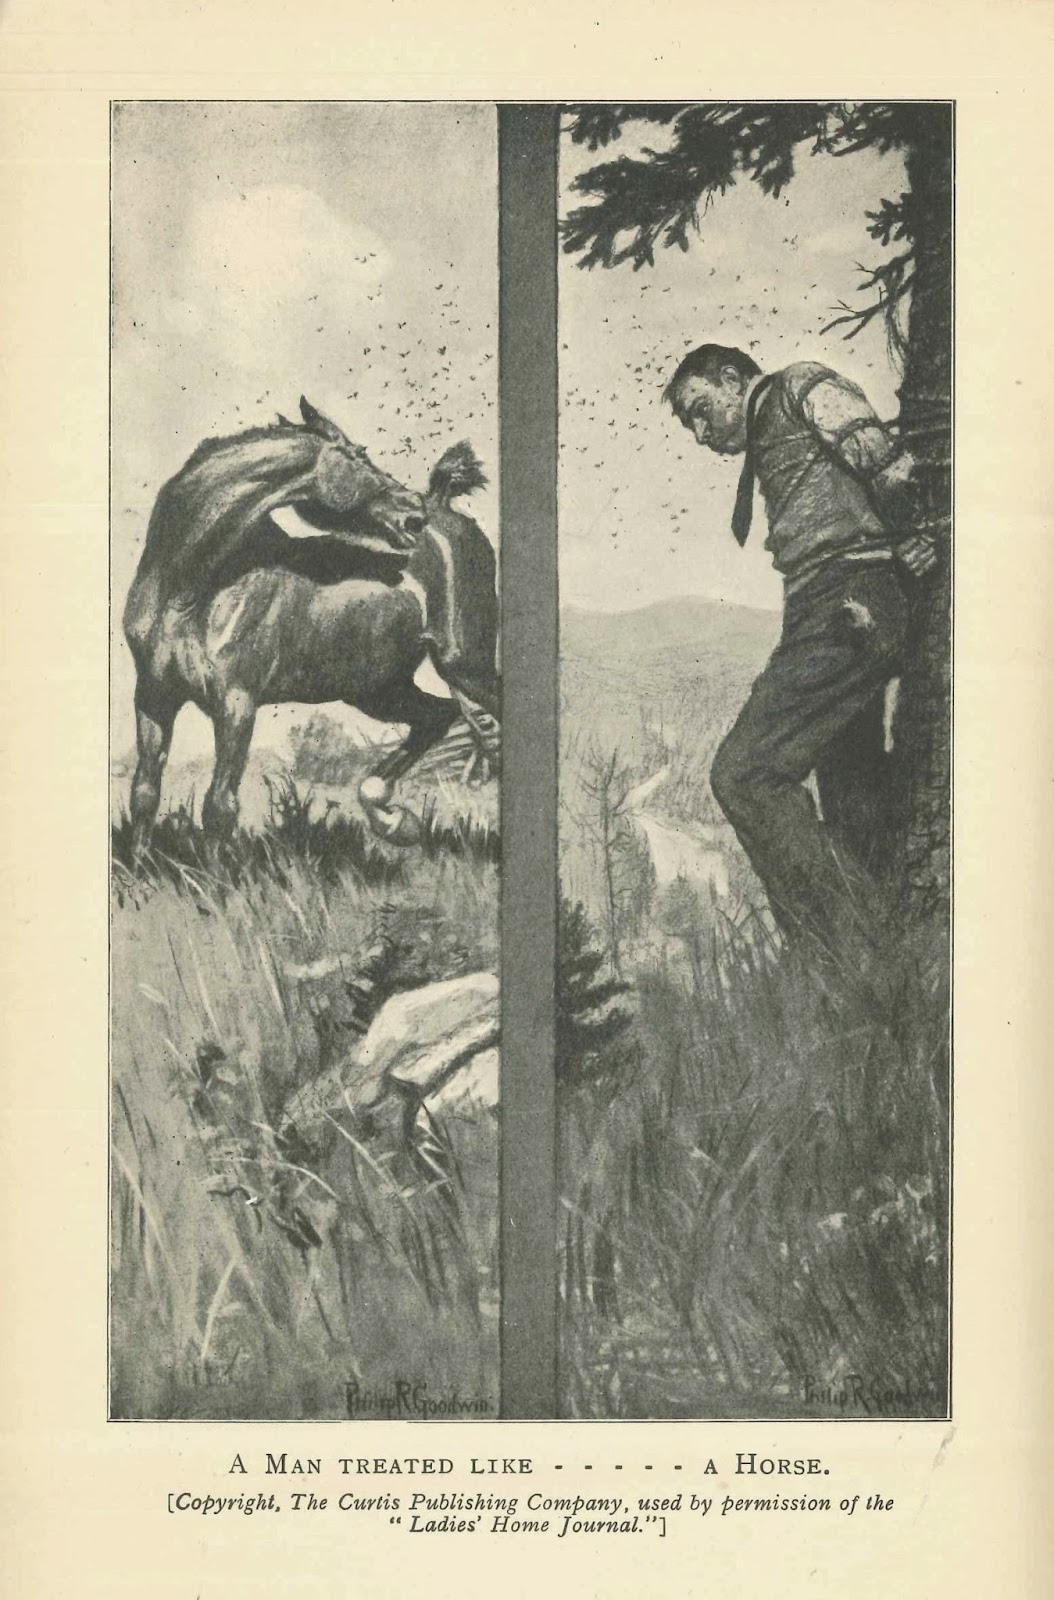 Side-by-side illustrations of a man and horse being harried by insects while physically restrained.